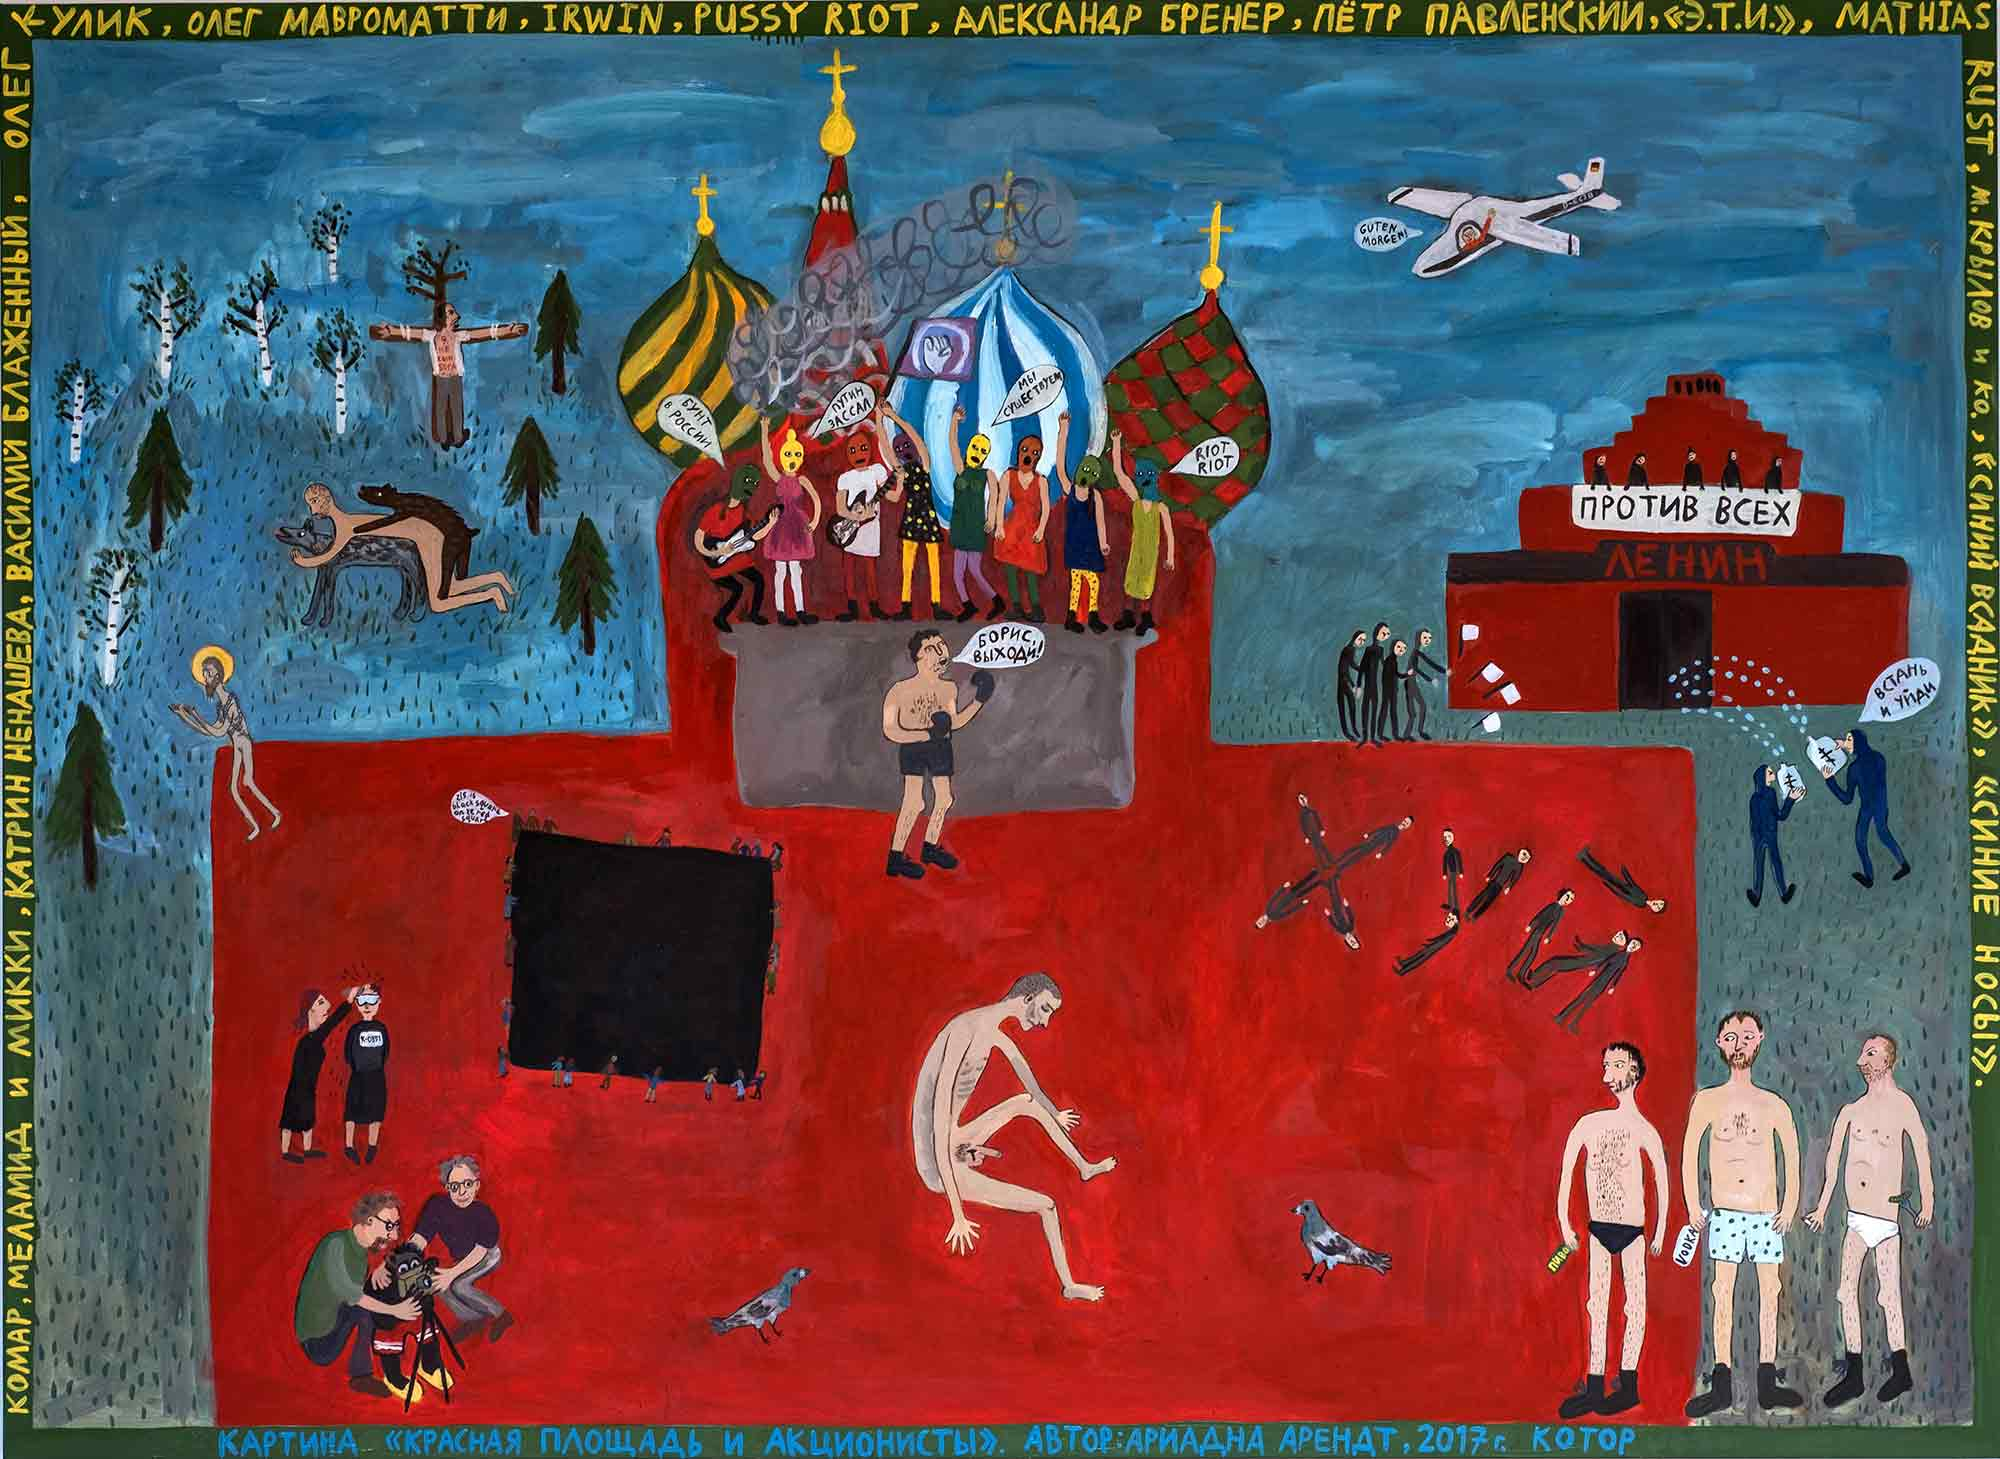 Ariadne Arendt, The Actionists on Red Square (2017-2018) Animated GIF, oil on canvas, 185х130 см. Animation executed by Mikhail Kishkarev. The painting belongs to the collection of Marat Guelman.